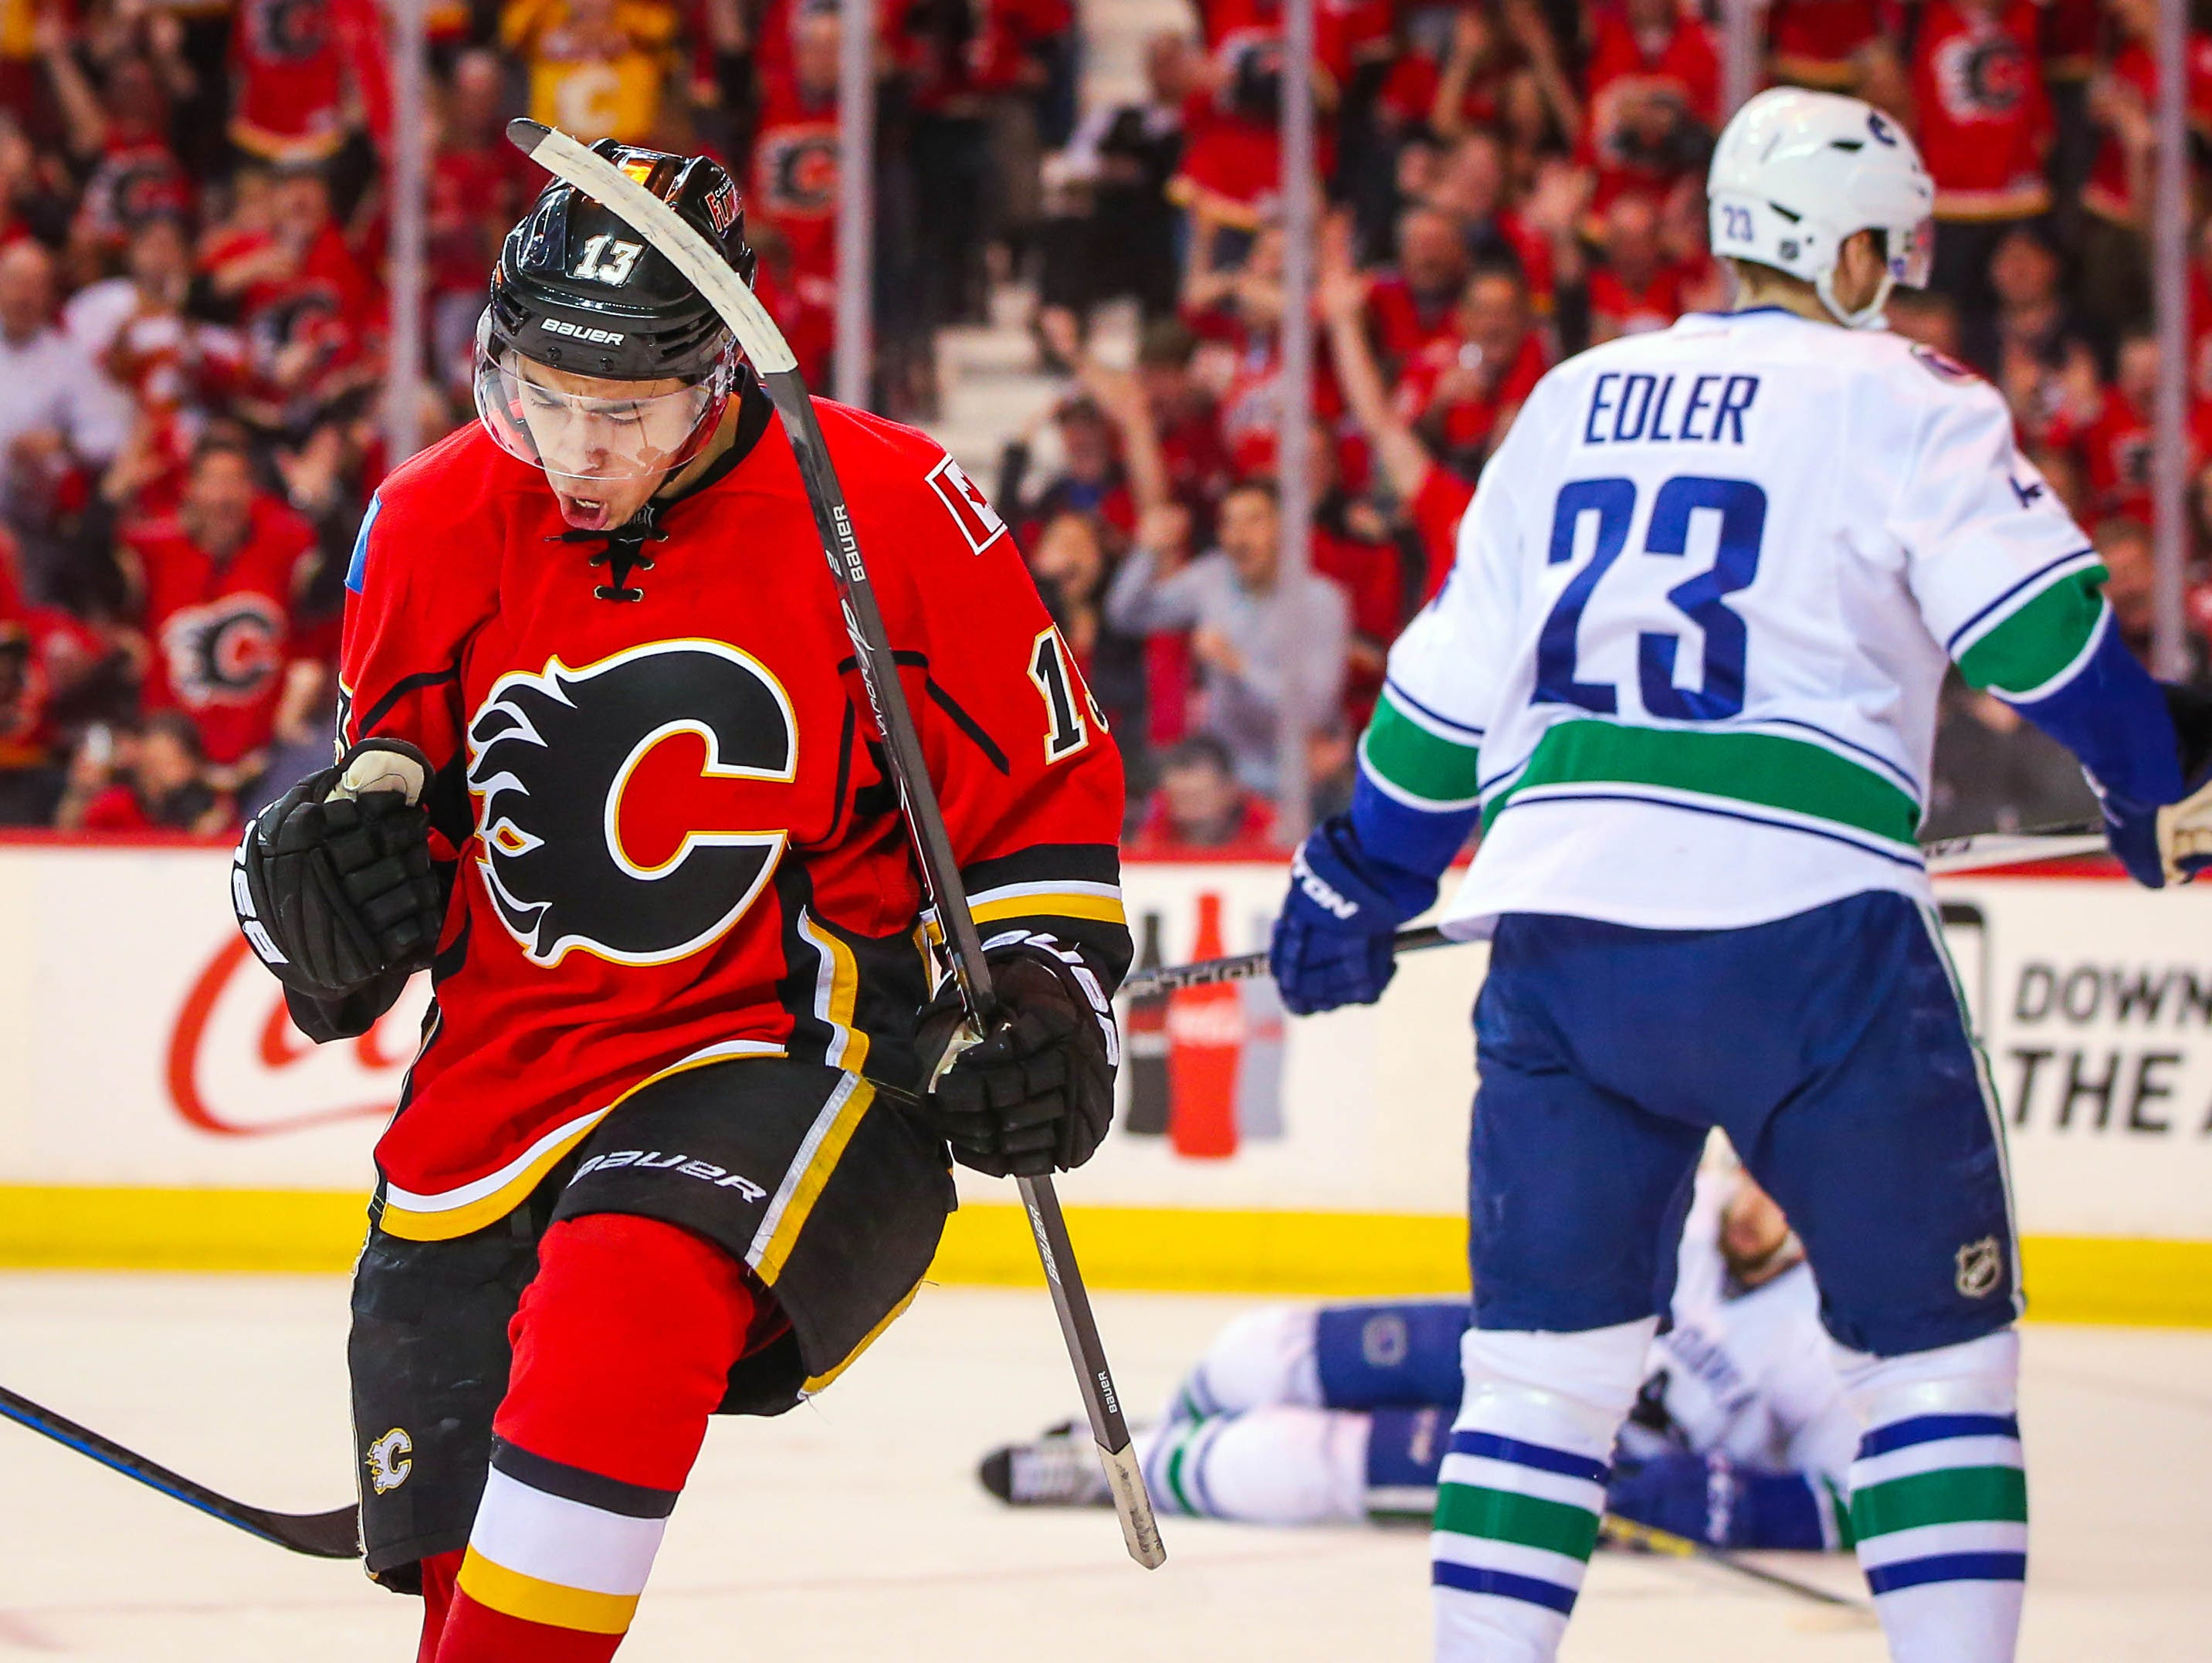 Johnny Gaudreau, a former Gloucester Catholic standout, is one of three finalists for the NHL's rookie of the year award.